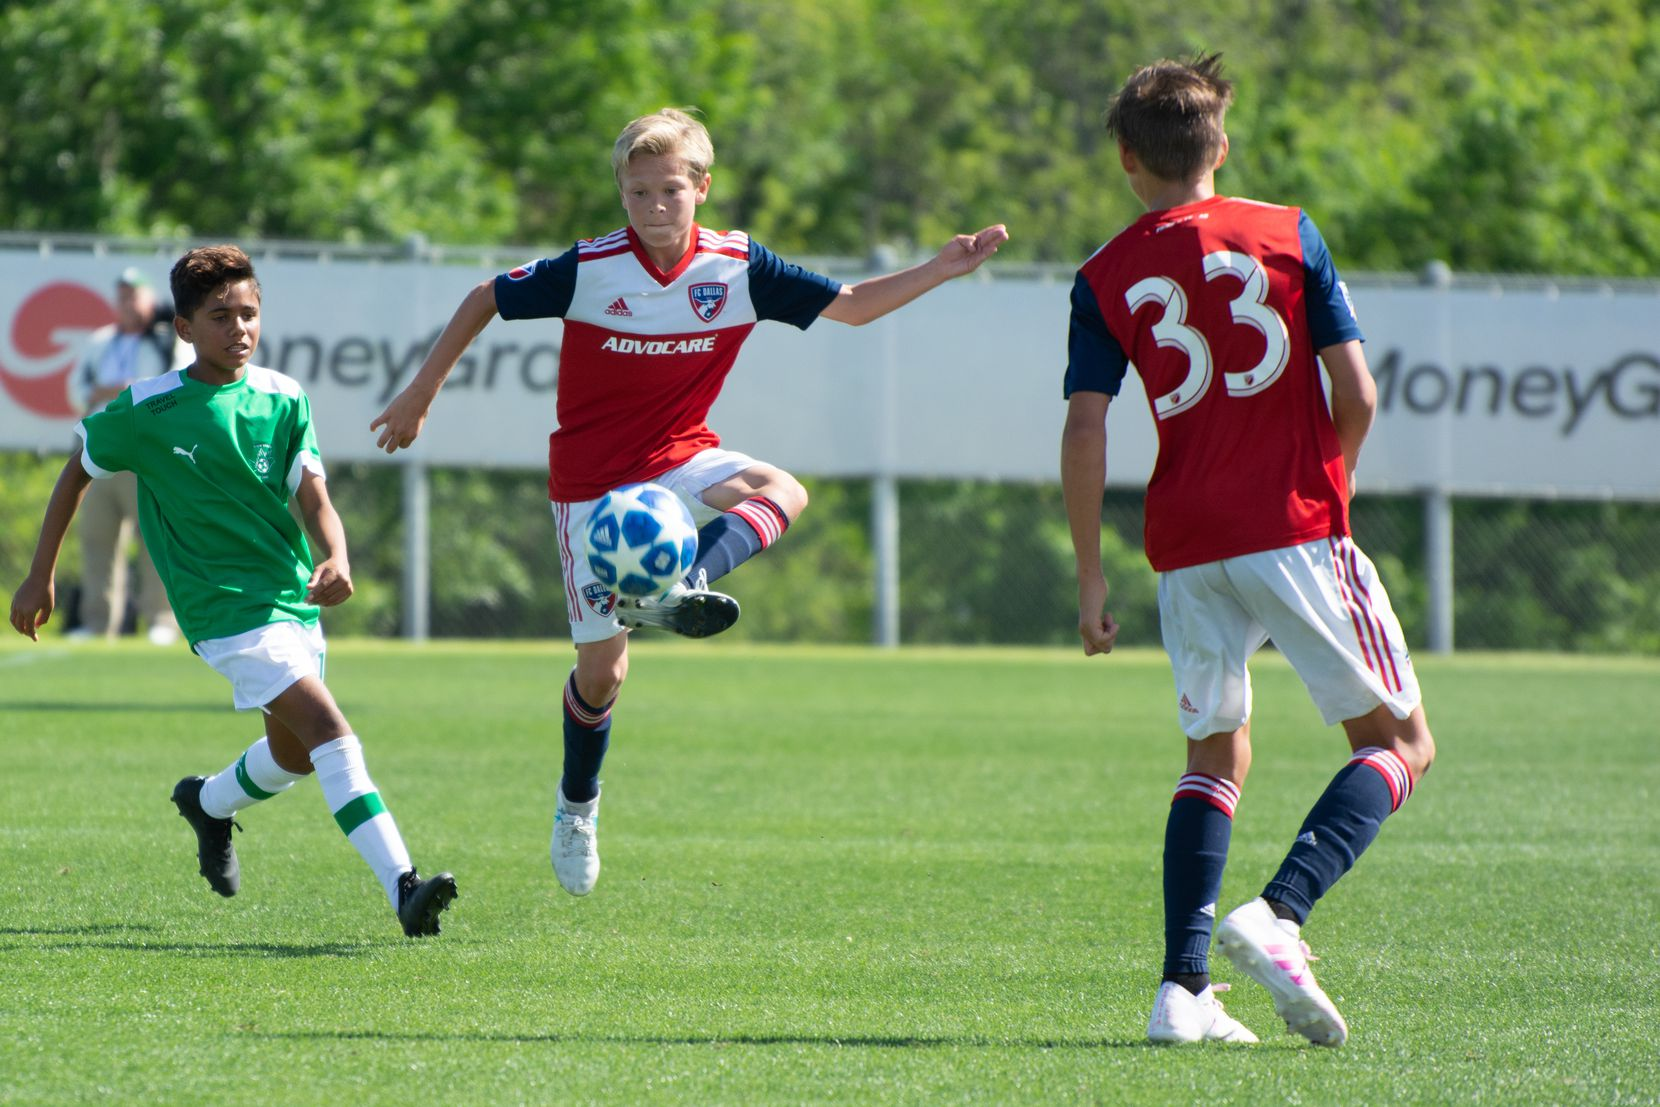 Nolan Norris traps the ball against Ikapa United in the 2019 Dallas Cup Super 14s while Nighte Pickering looks on.